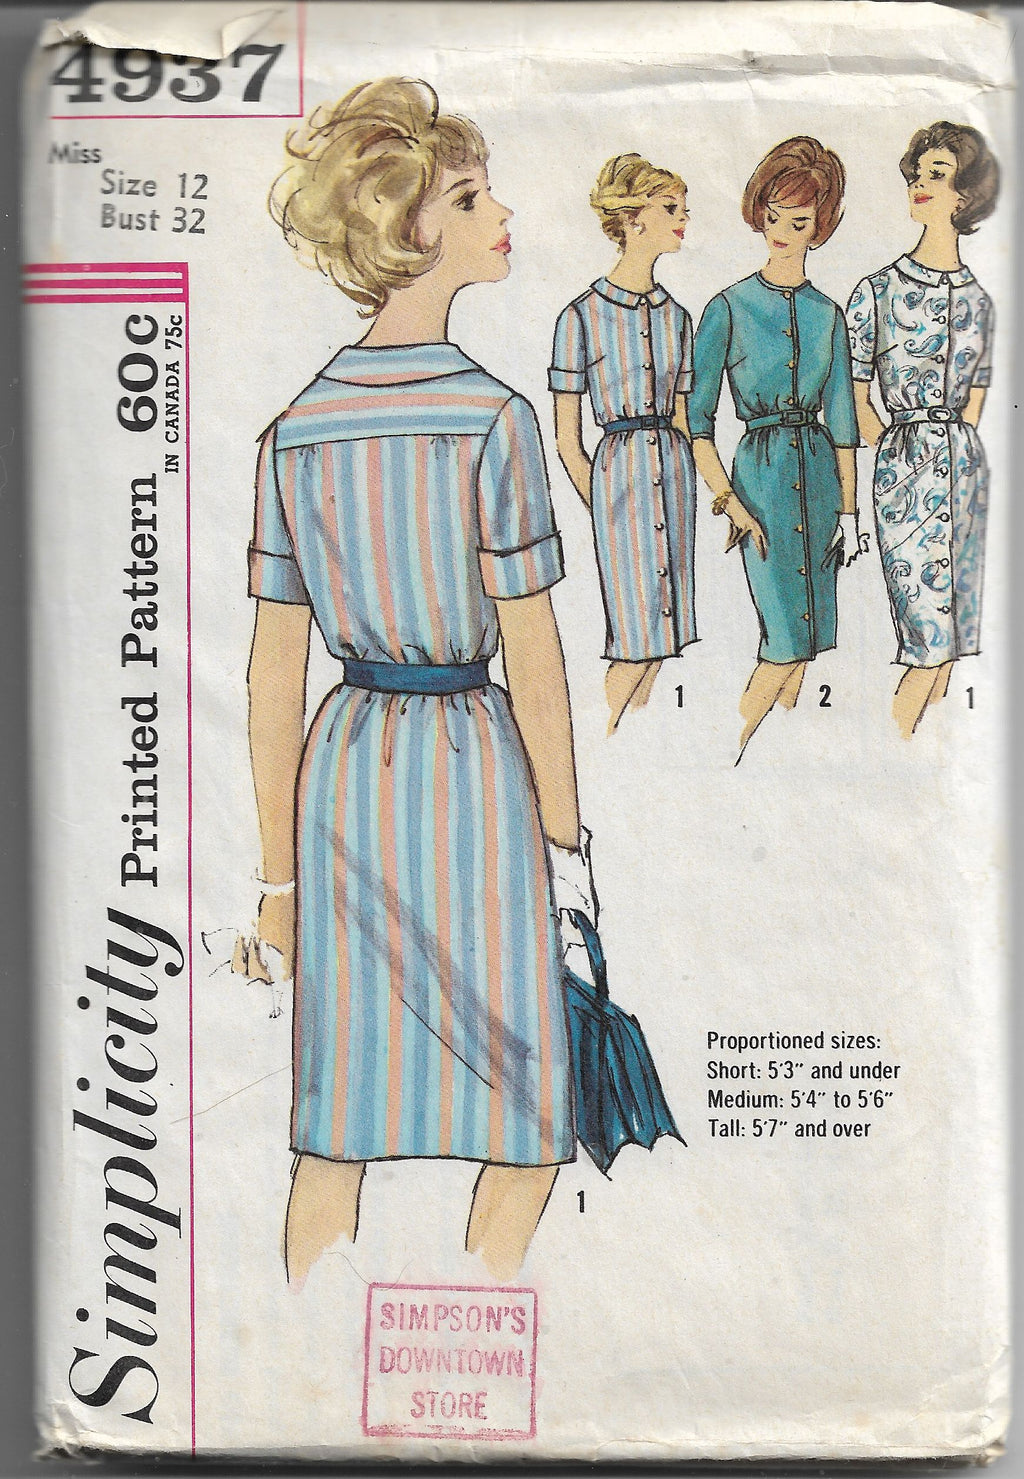 Simplicity 4937 Vintage Sewing Pattern 1960s Ladies Button Front Dress - VintageStitching - Vintage Sewing Patterns